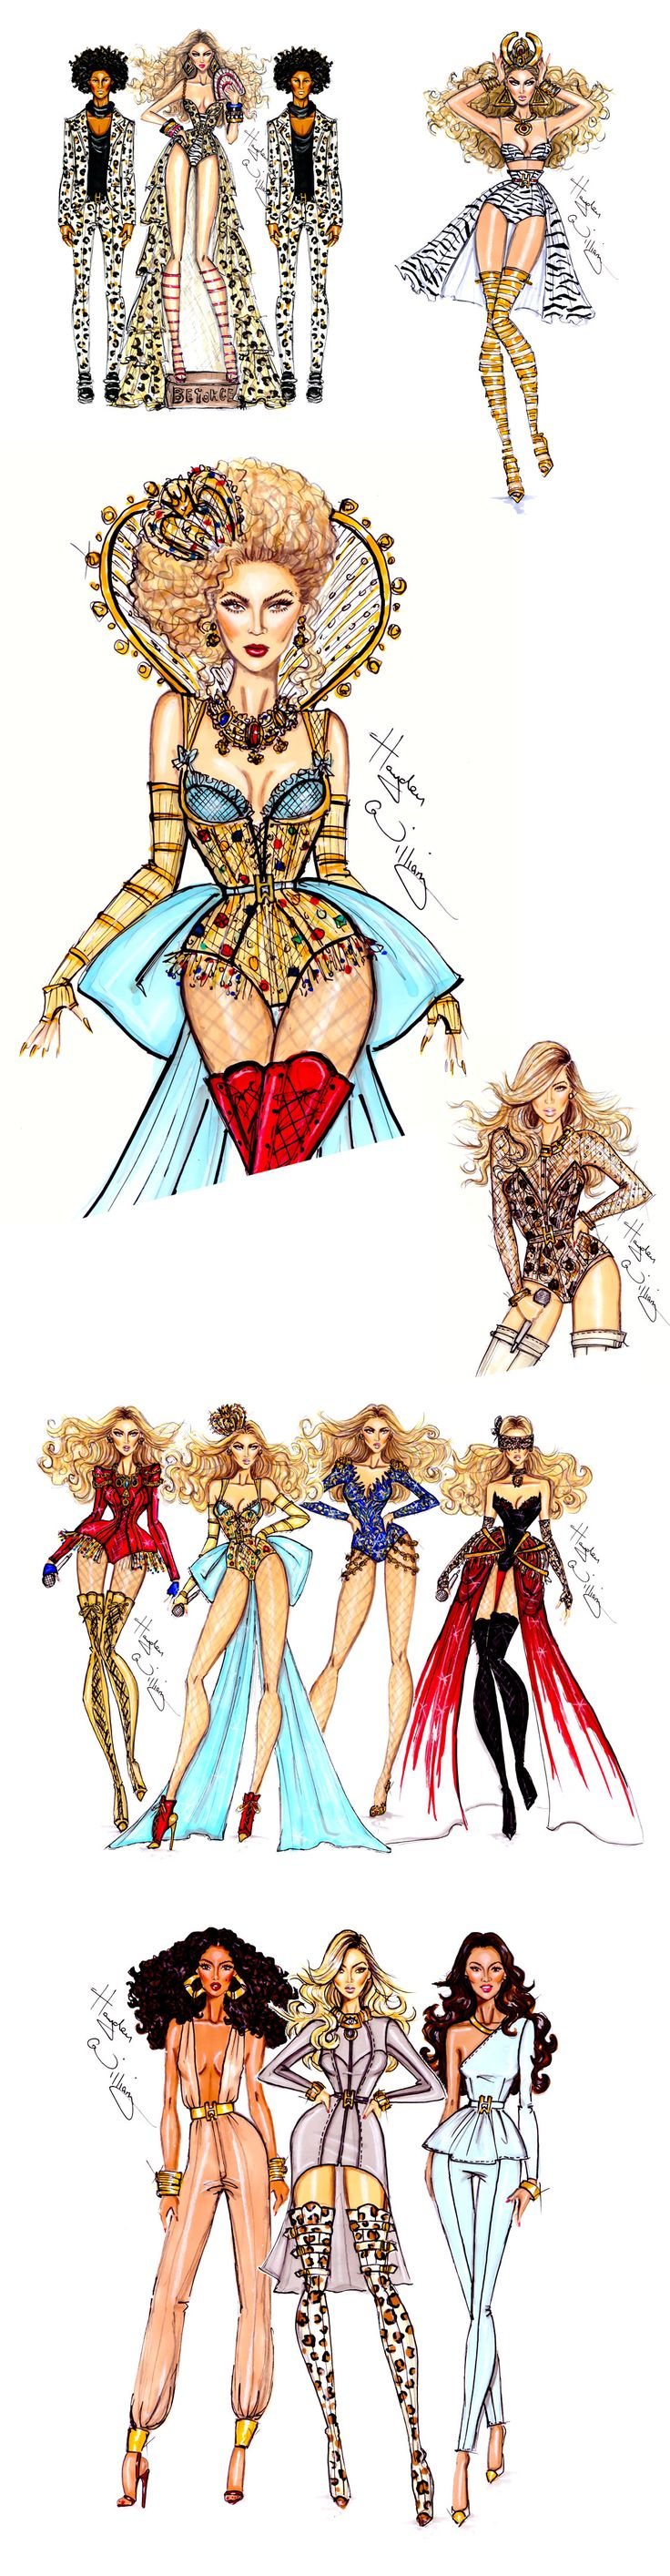 Just discovered fashion illustrator Hayley Williams, cannot contain my inner fashionista! Each artwork is spot on, capturing each character's quirks, most striking features and iconic outfits...thanks to Queen Bey herself on beyonce.com for showcasing his work (shout out to the Beyhive!)